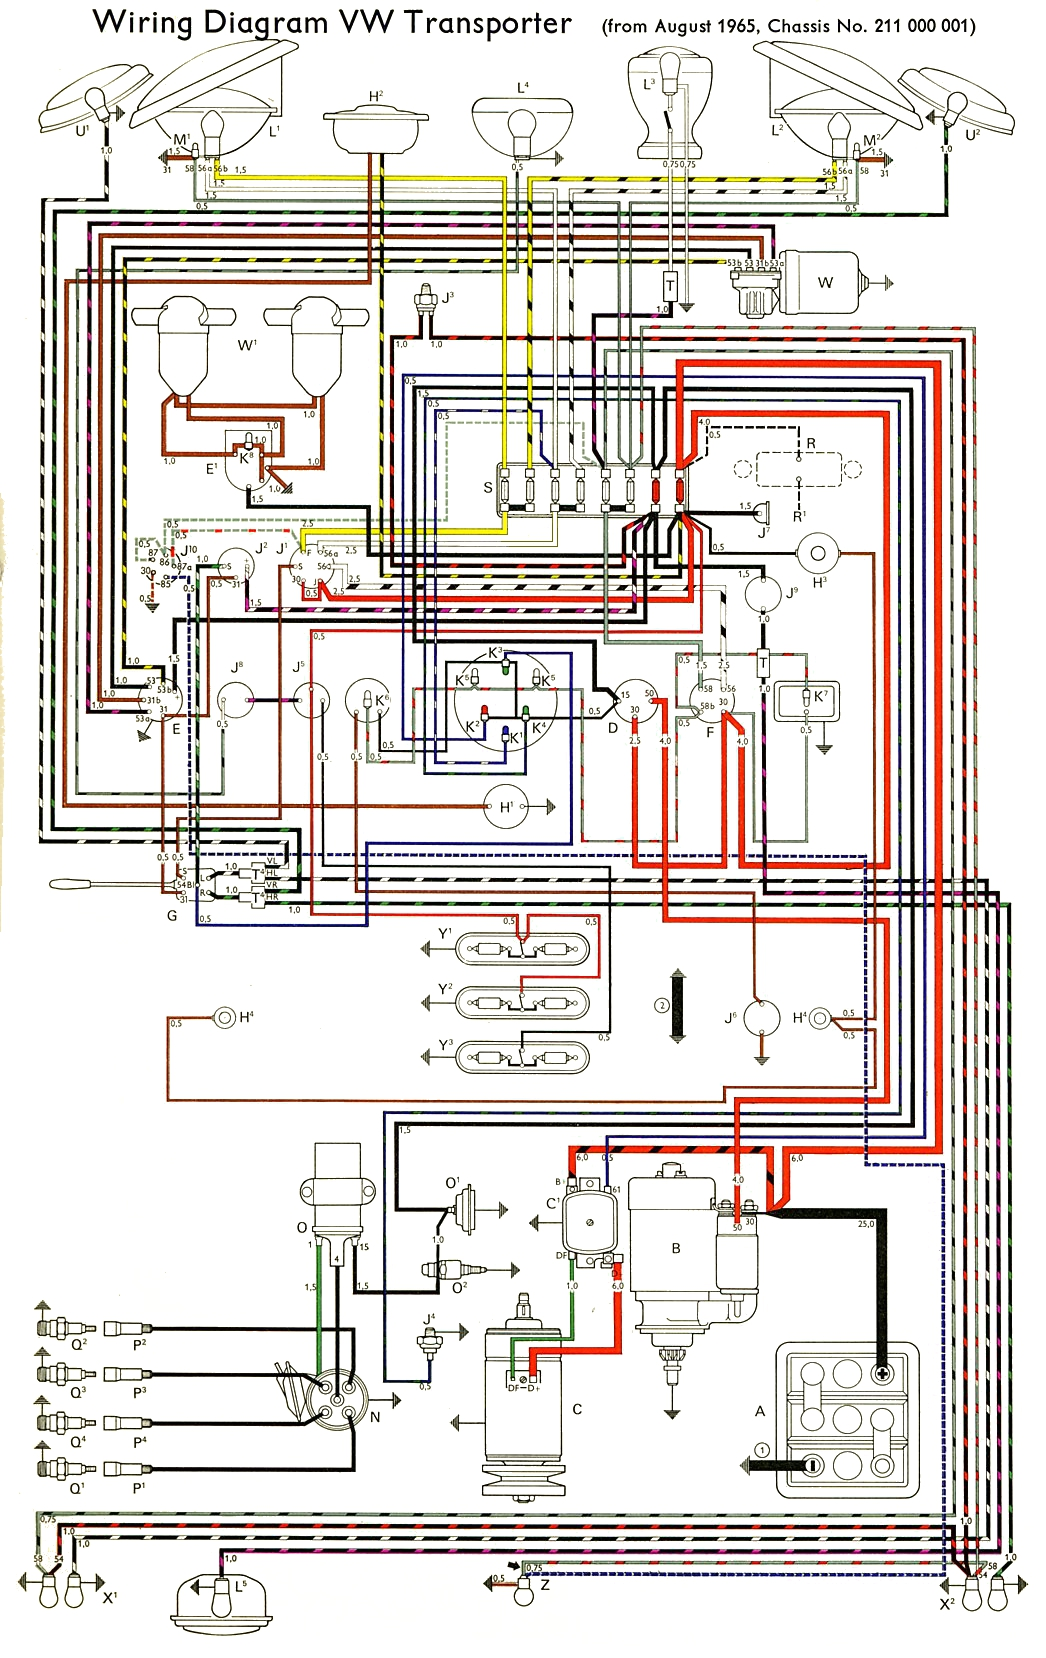 Type 2 Wiring Diagrams Diagram Of Electronic Clock